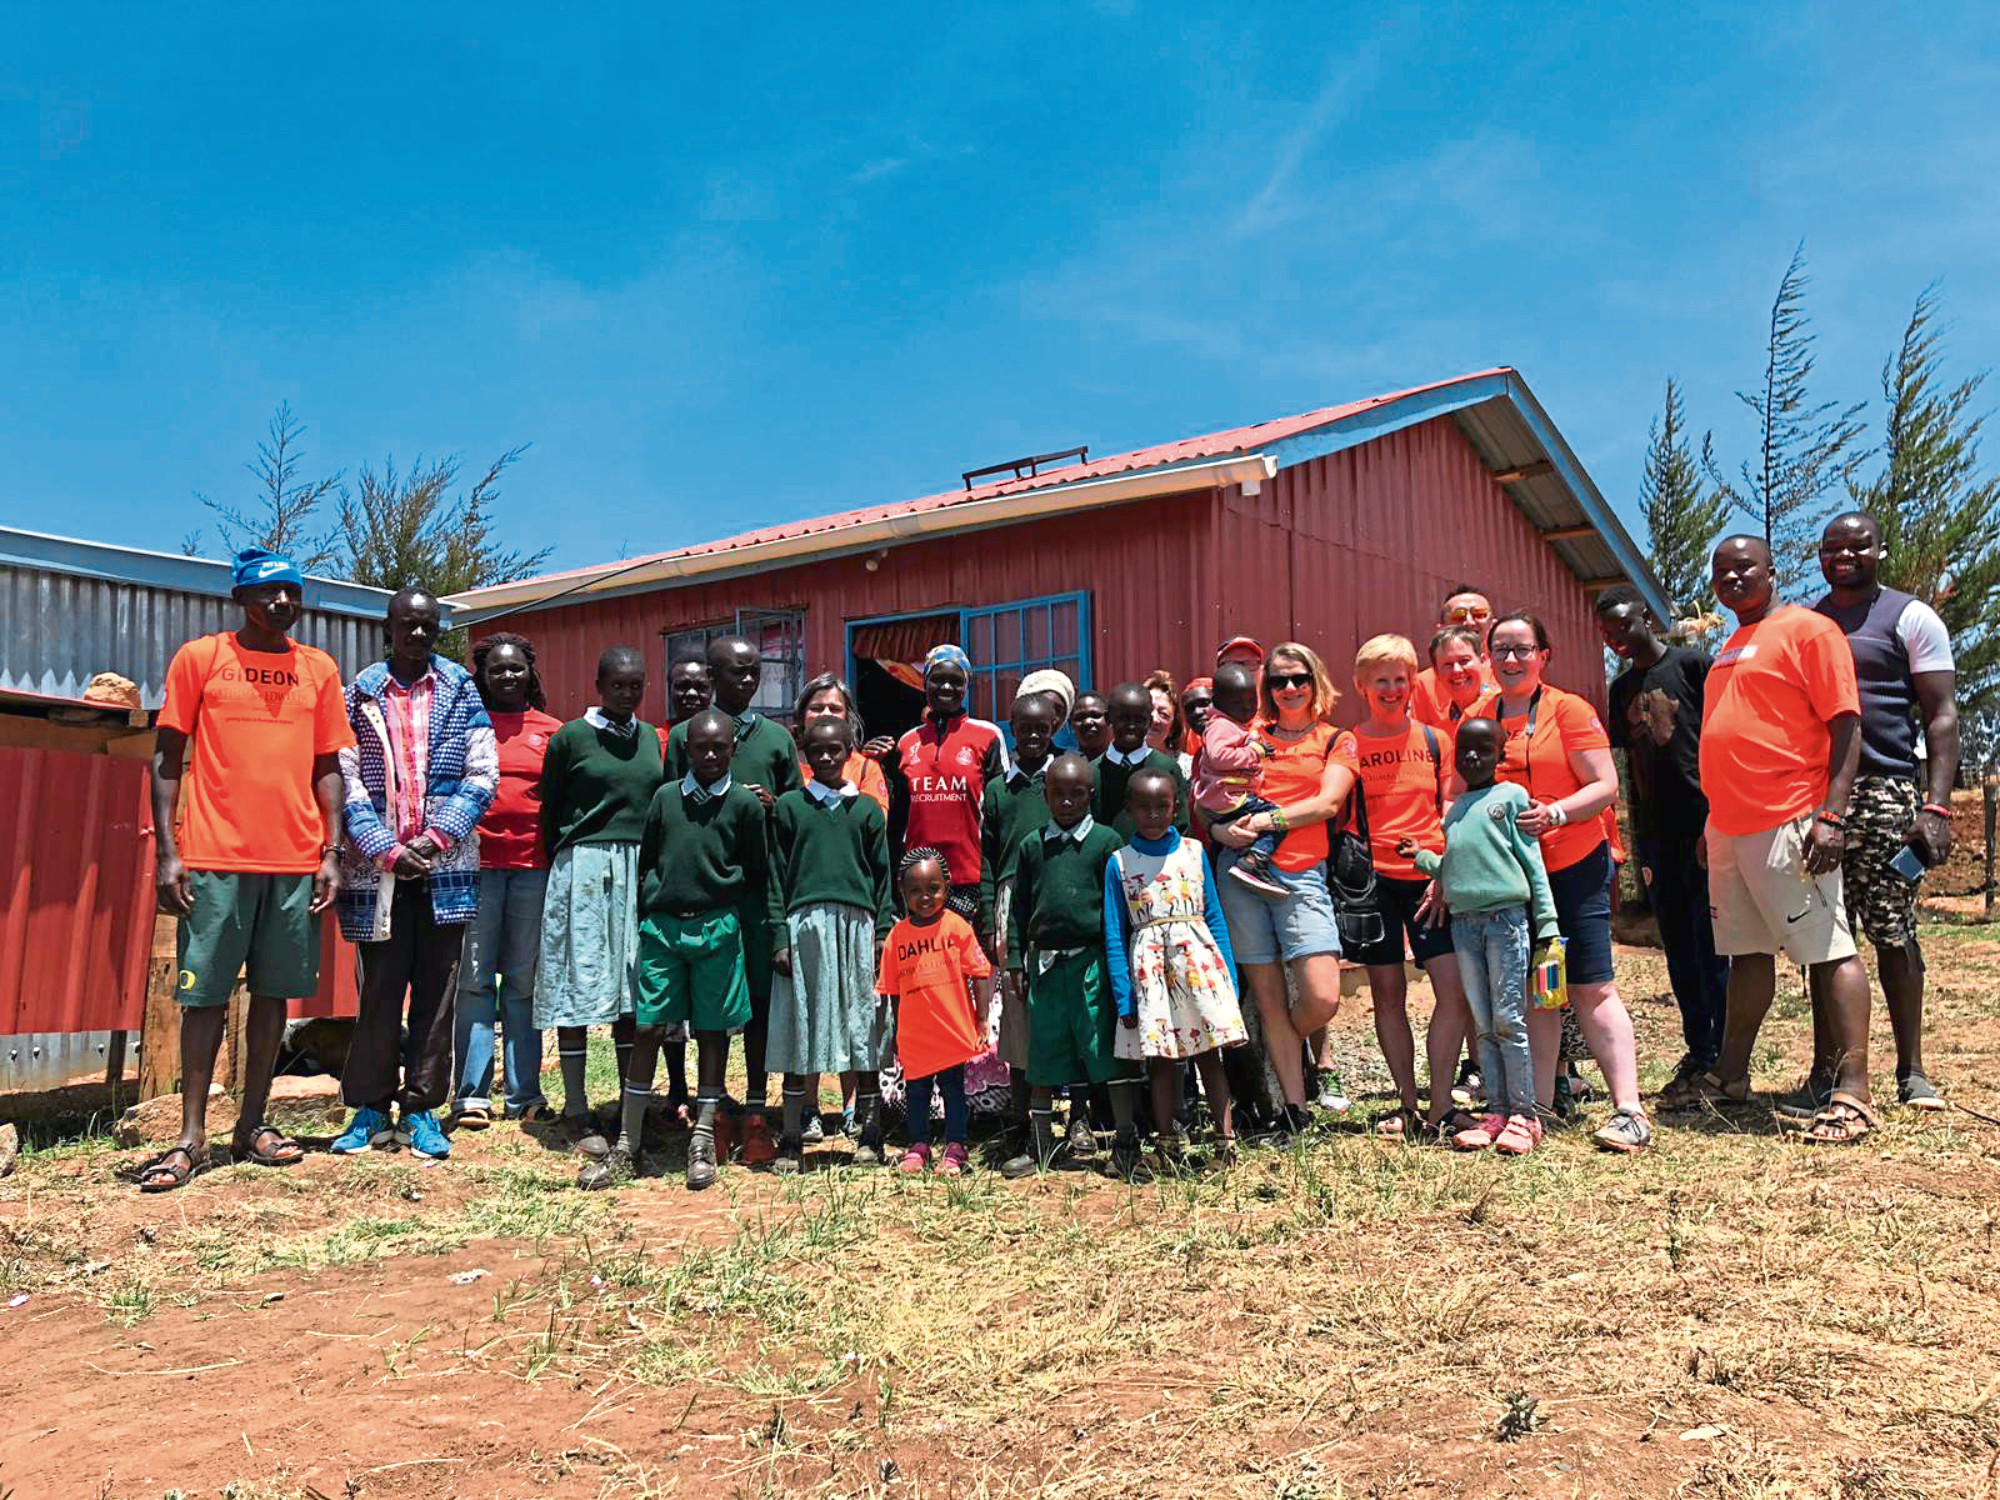 Kenya 22 volunteers on their recent trip out to the country helped build the charity's 34th house for people in need